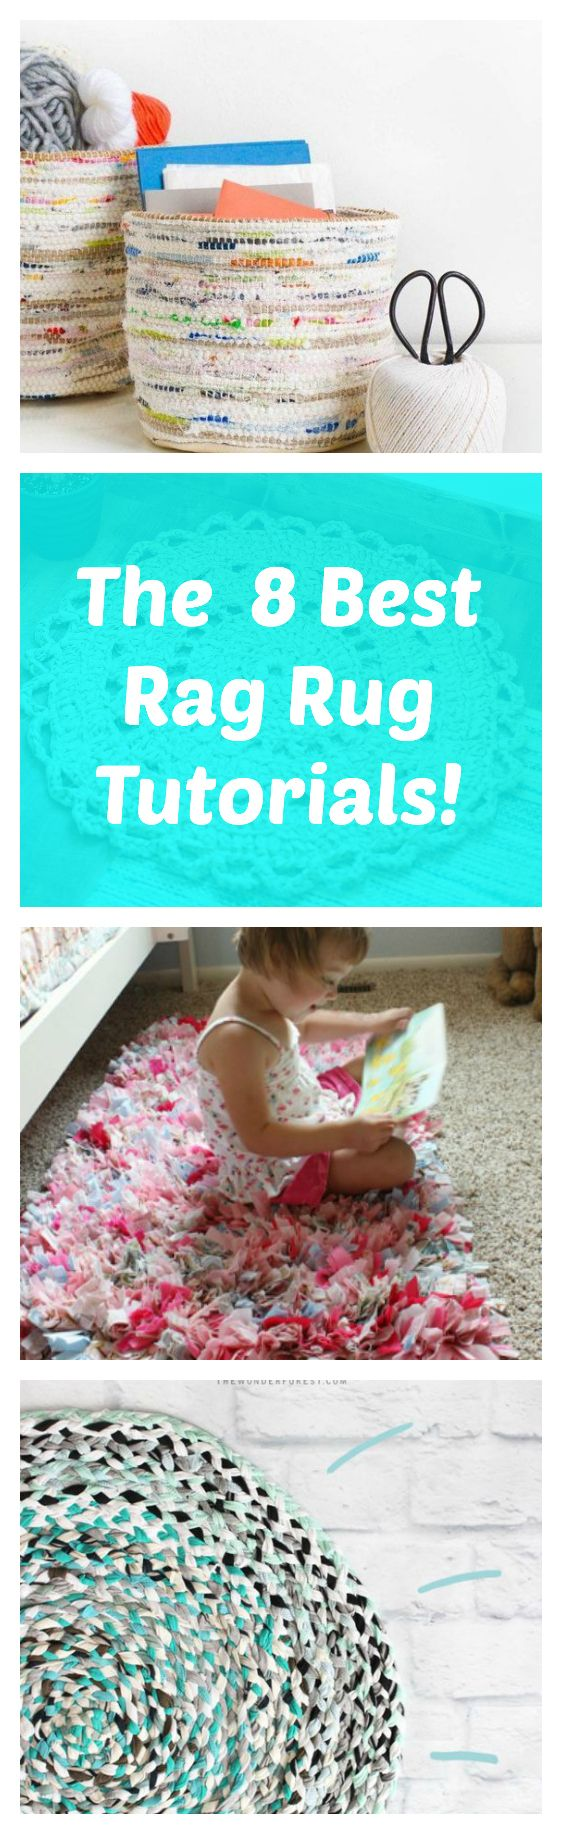 Have you ever tried making a rag rug? They are perfect for recycling old clothes and fabrics, and are easy to make. Fall is a great time to cozy up with a new crafting project like this! Here are s…